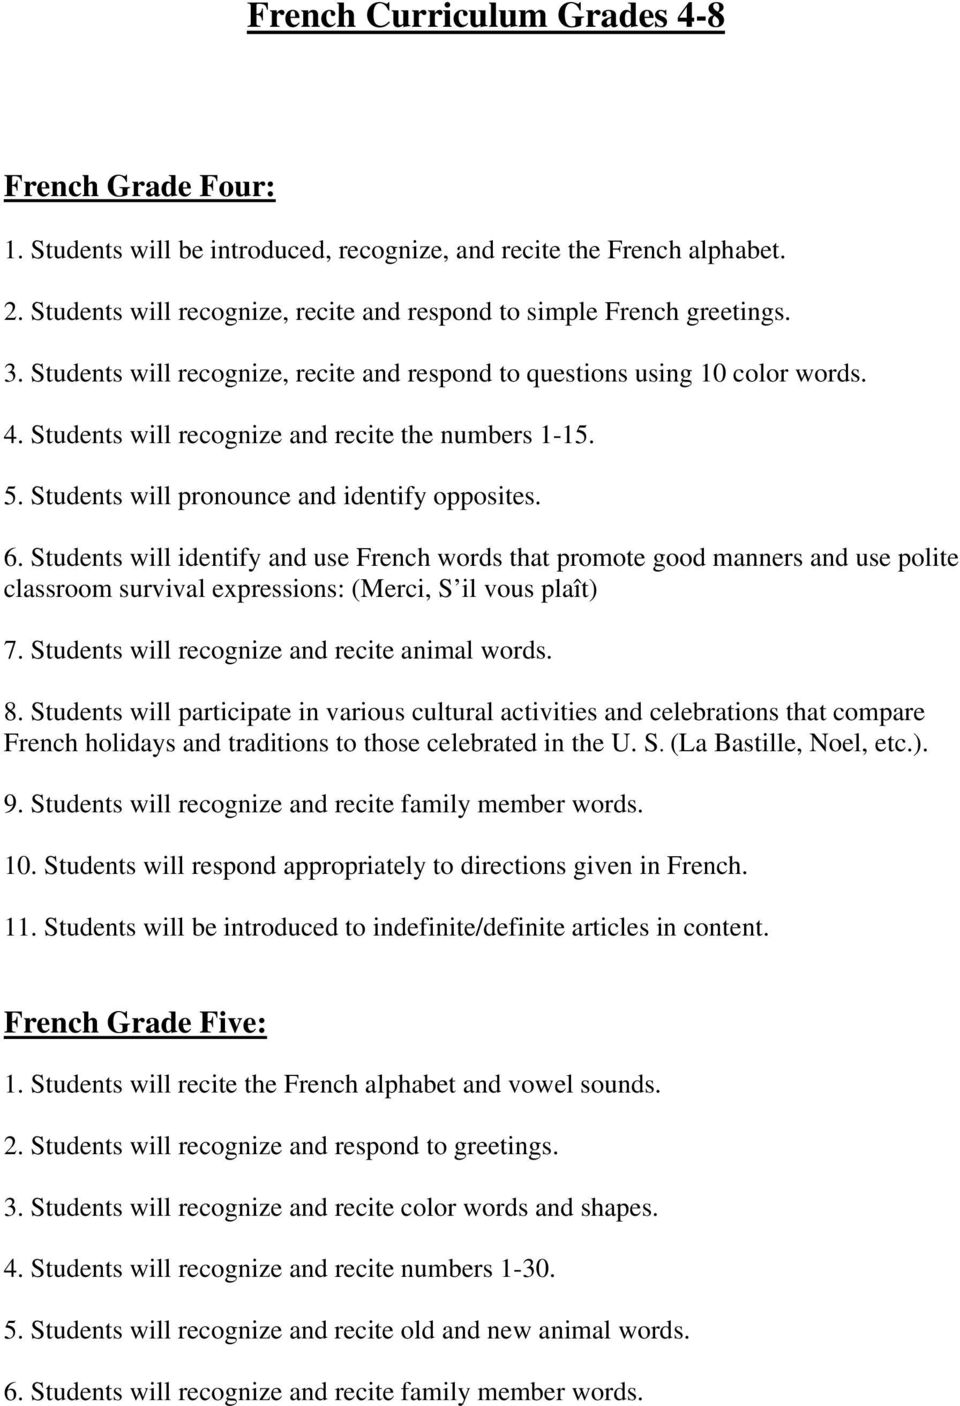 French curriculum grades pdf students will identify and use french words that promote good manners and use polite classroom survival m4hsunfo